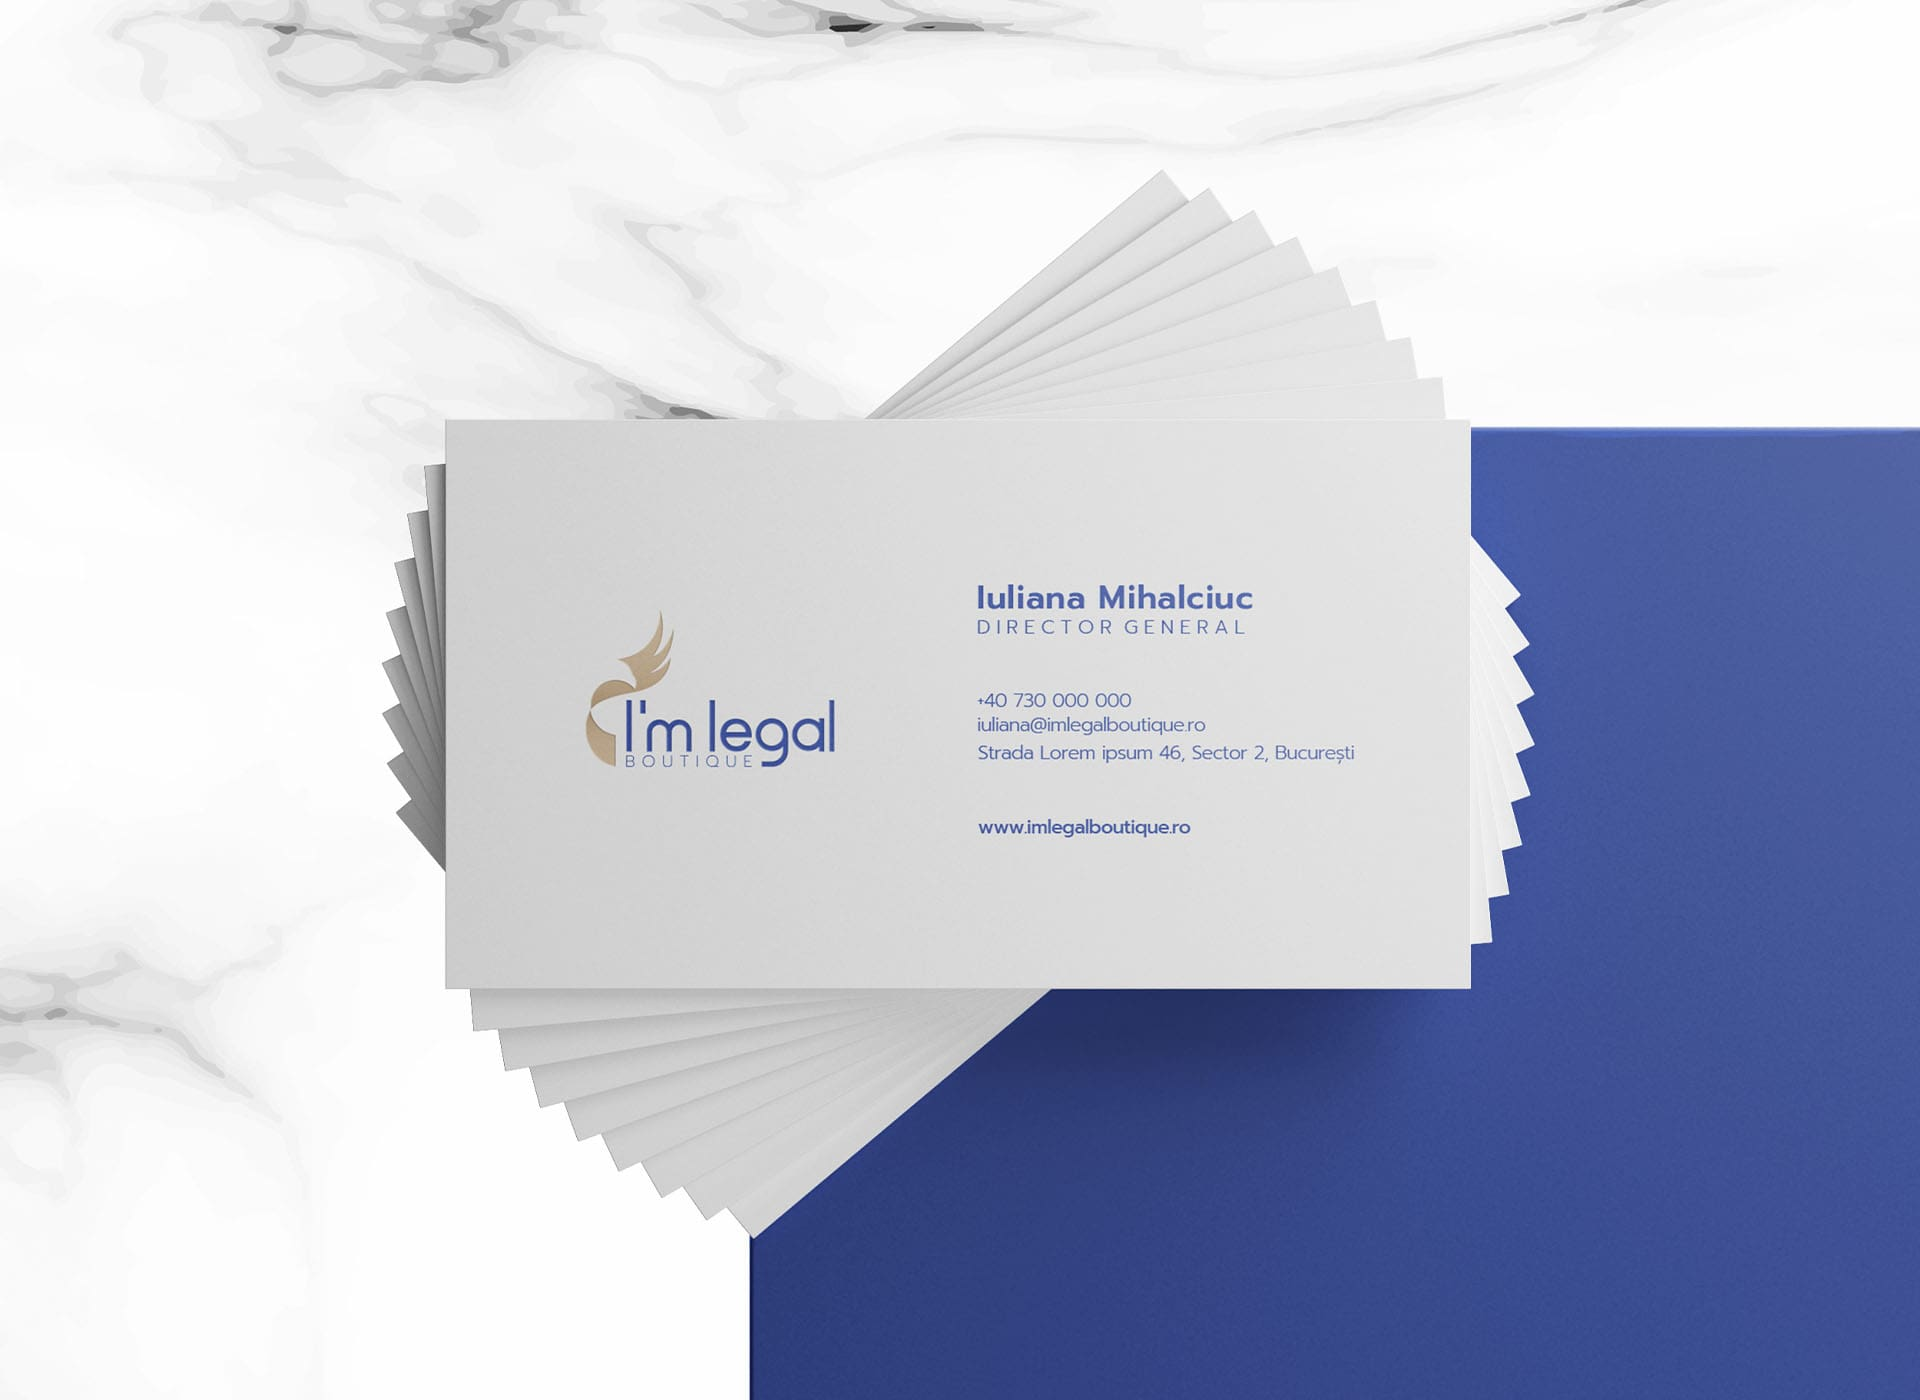 I'm legal portofoliu inoveo business card